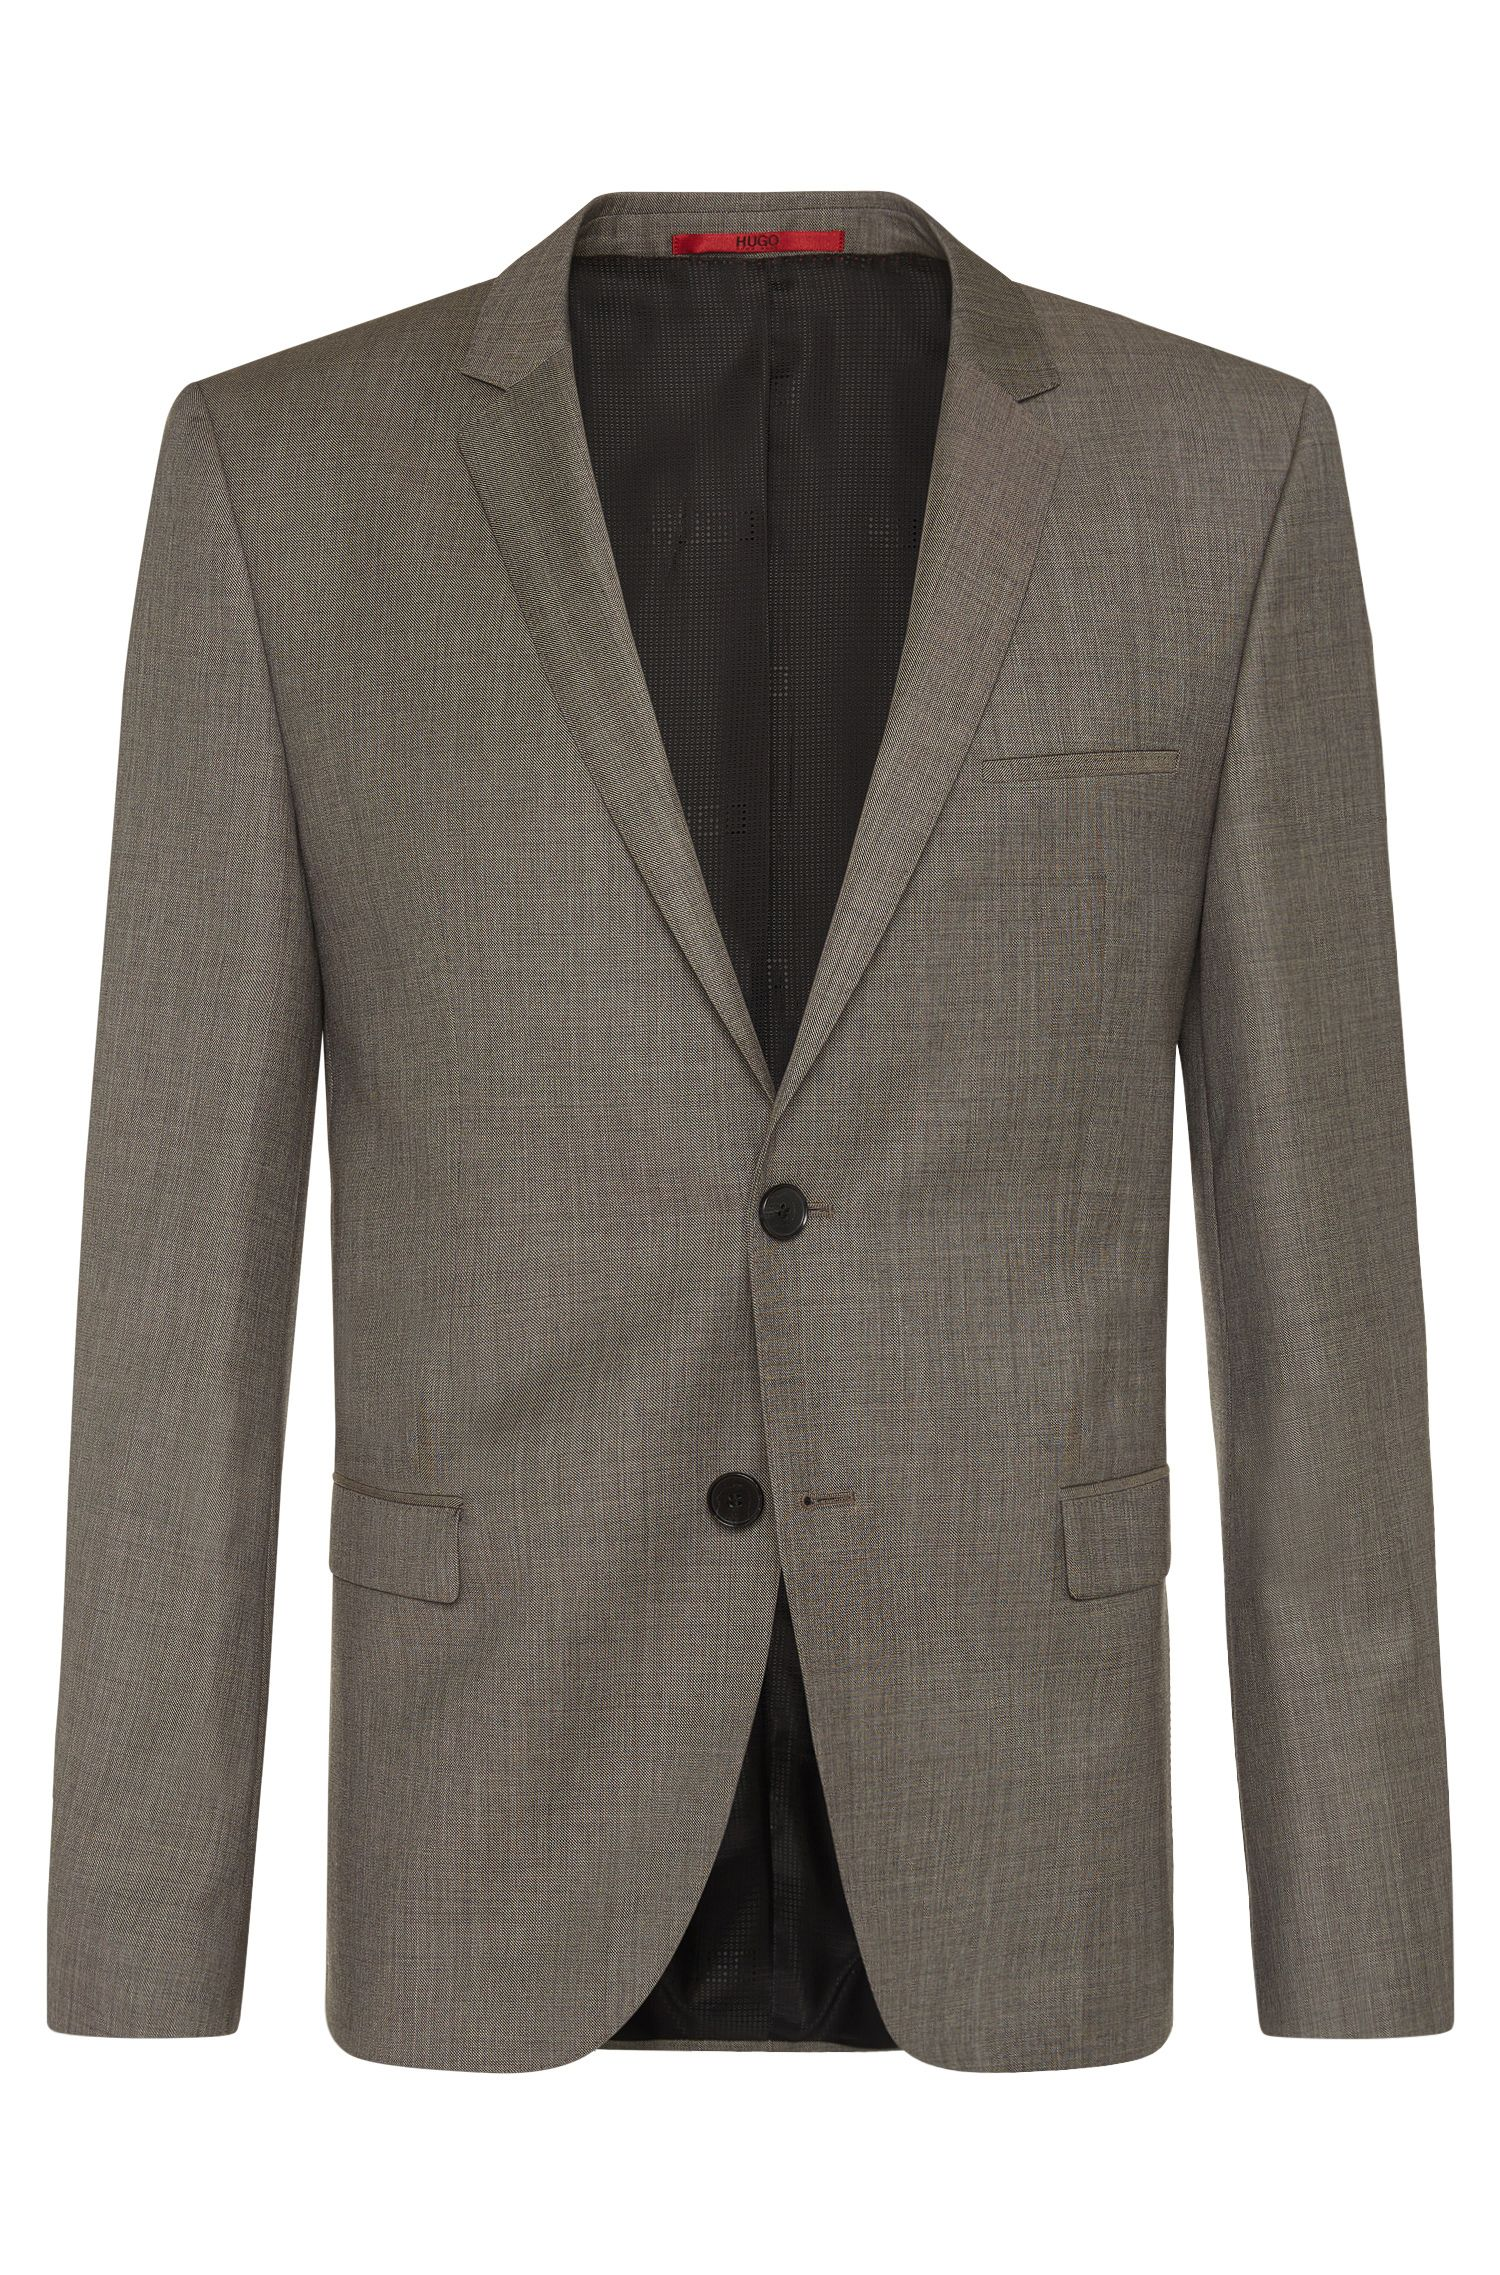 Heather Virgin Wool Suit, Slim Fit | Arti/Helion, Beige